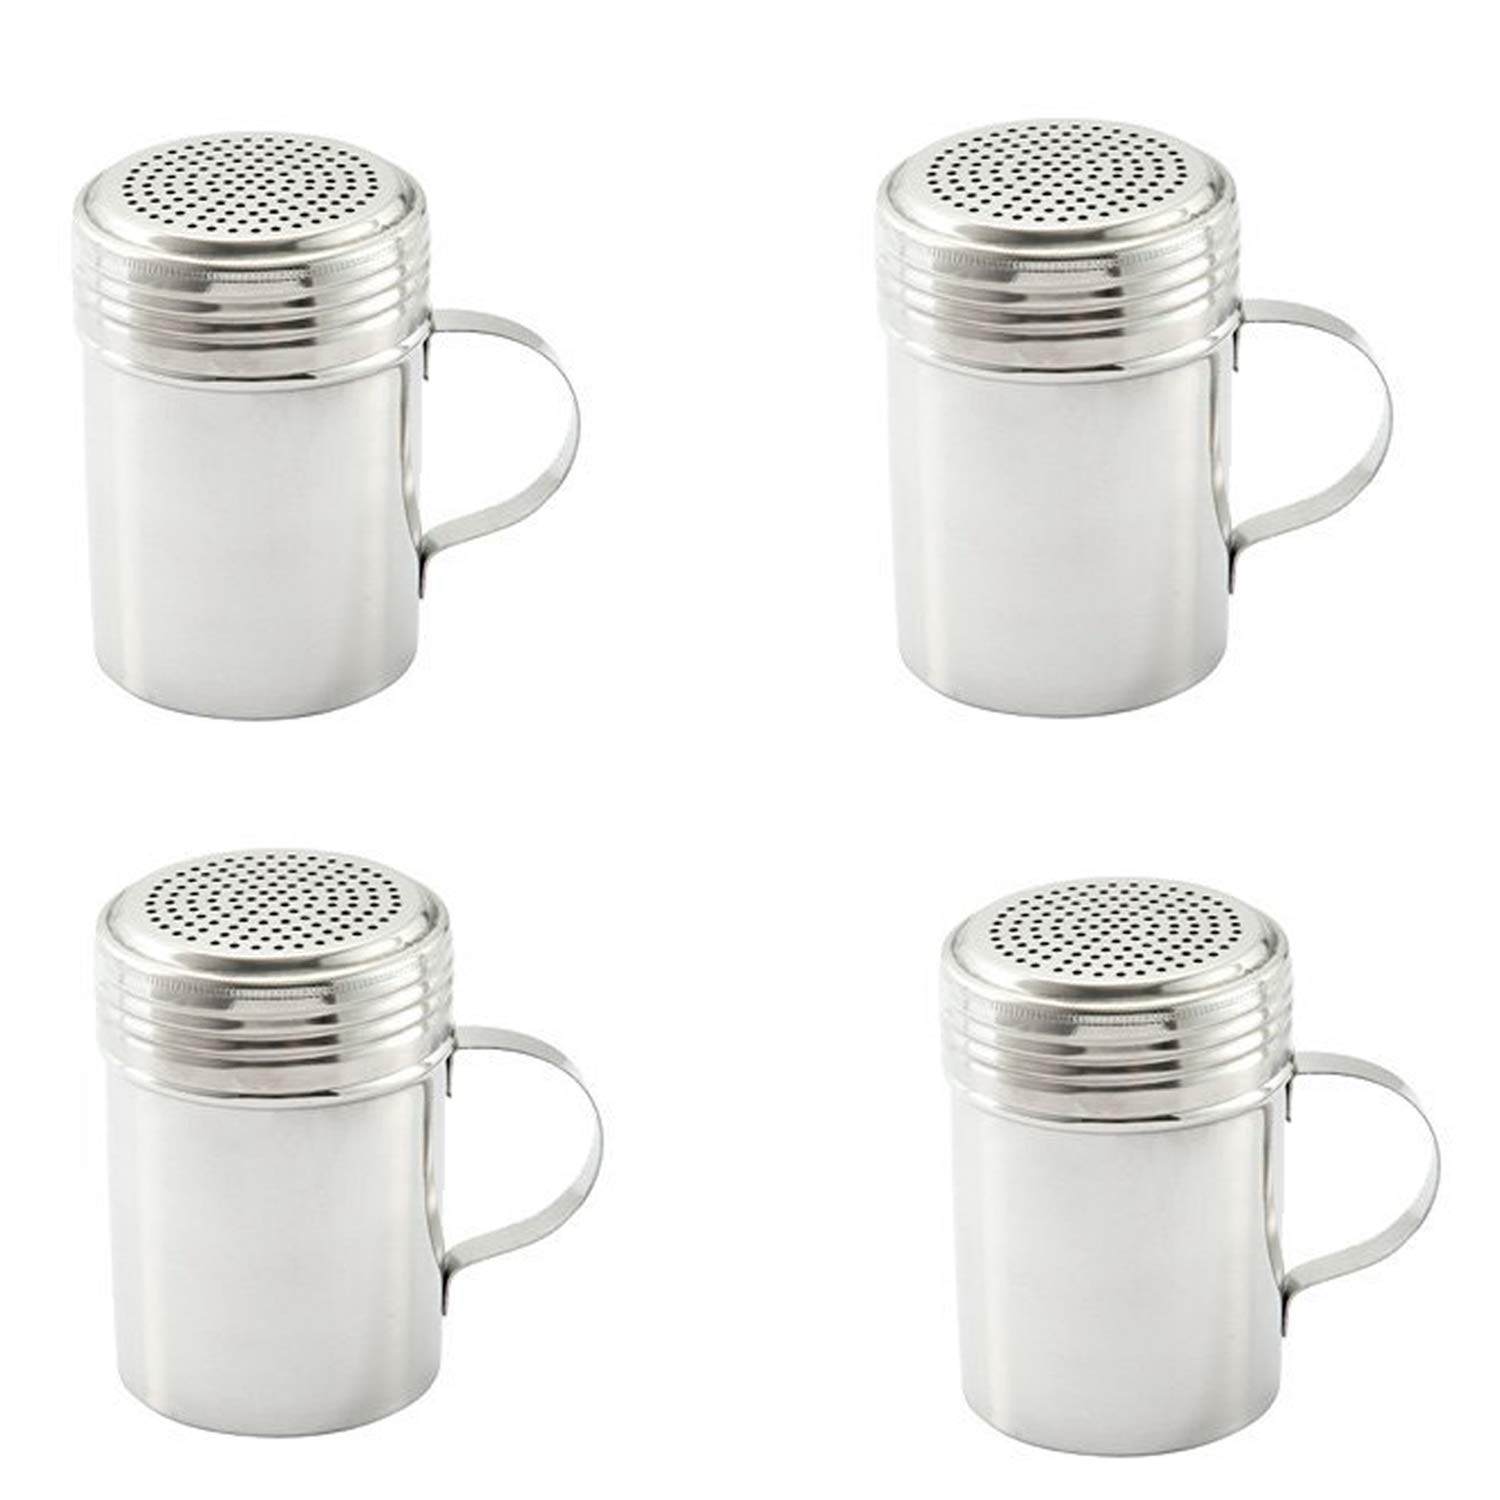 Stainless Steel Dredge Shaker with Handle, Set of 4 – 10 oz. by Culinary Depot (Image #3)